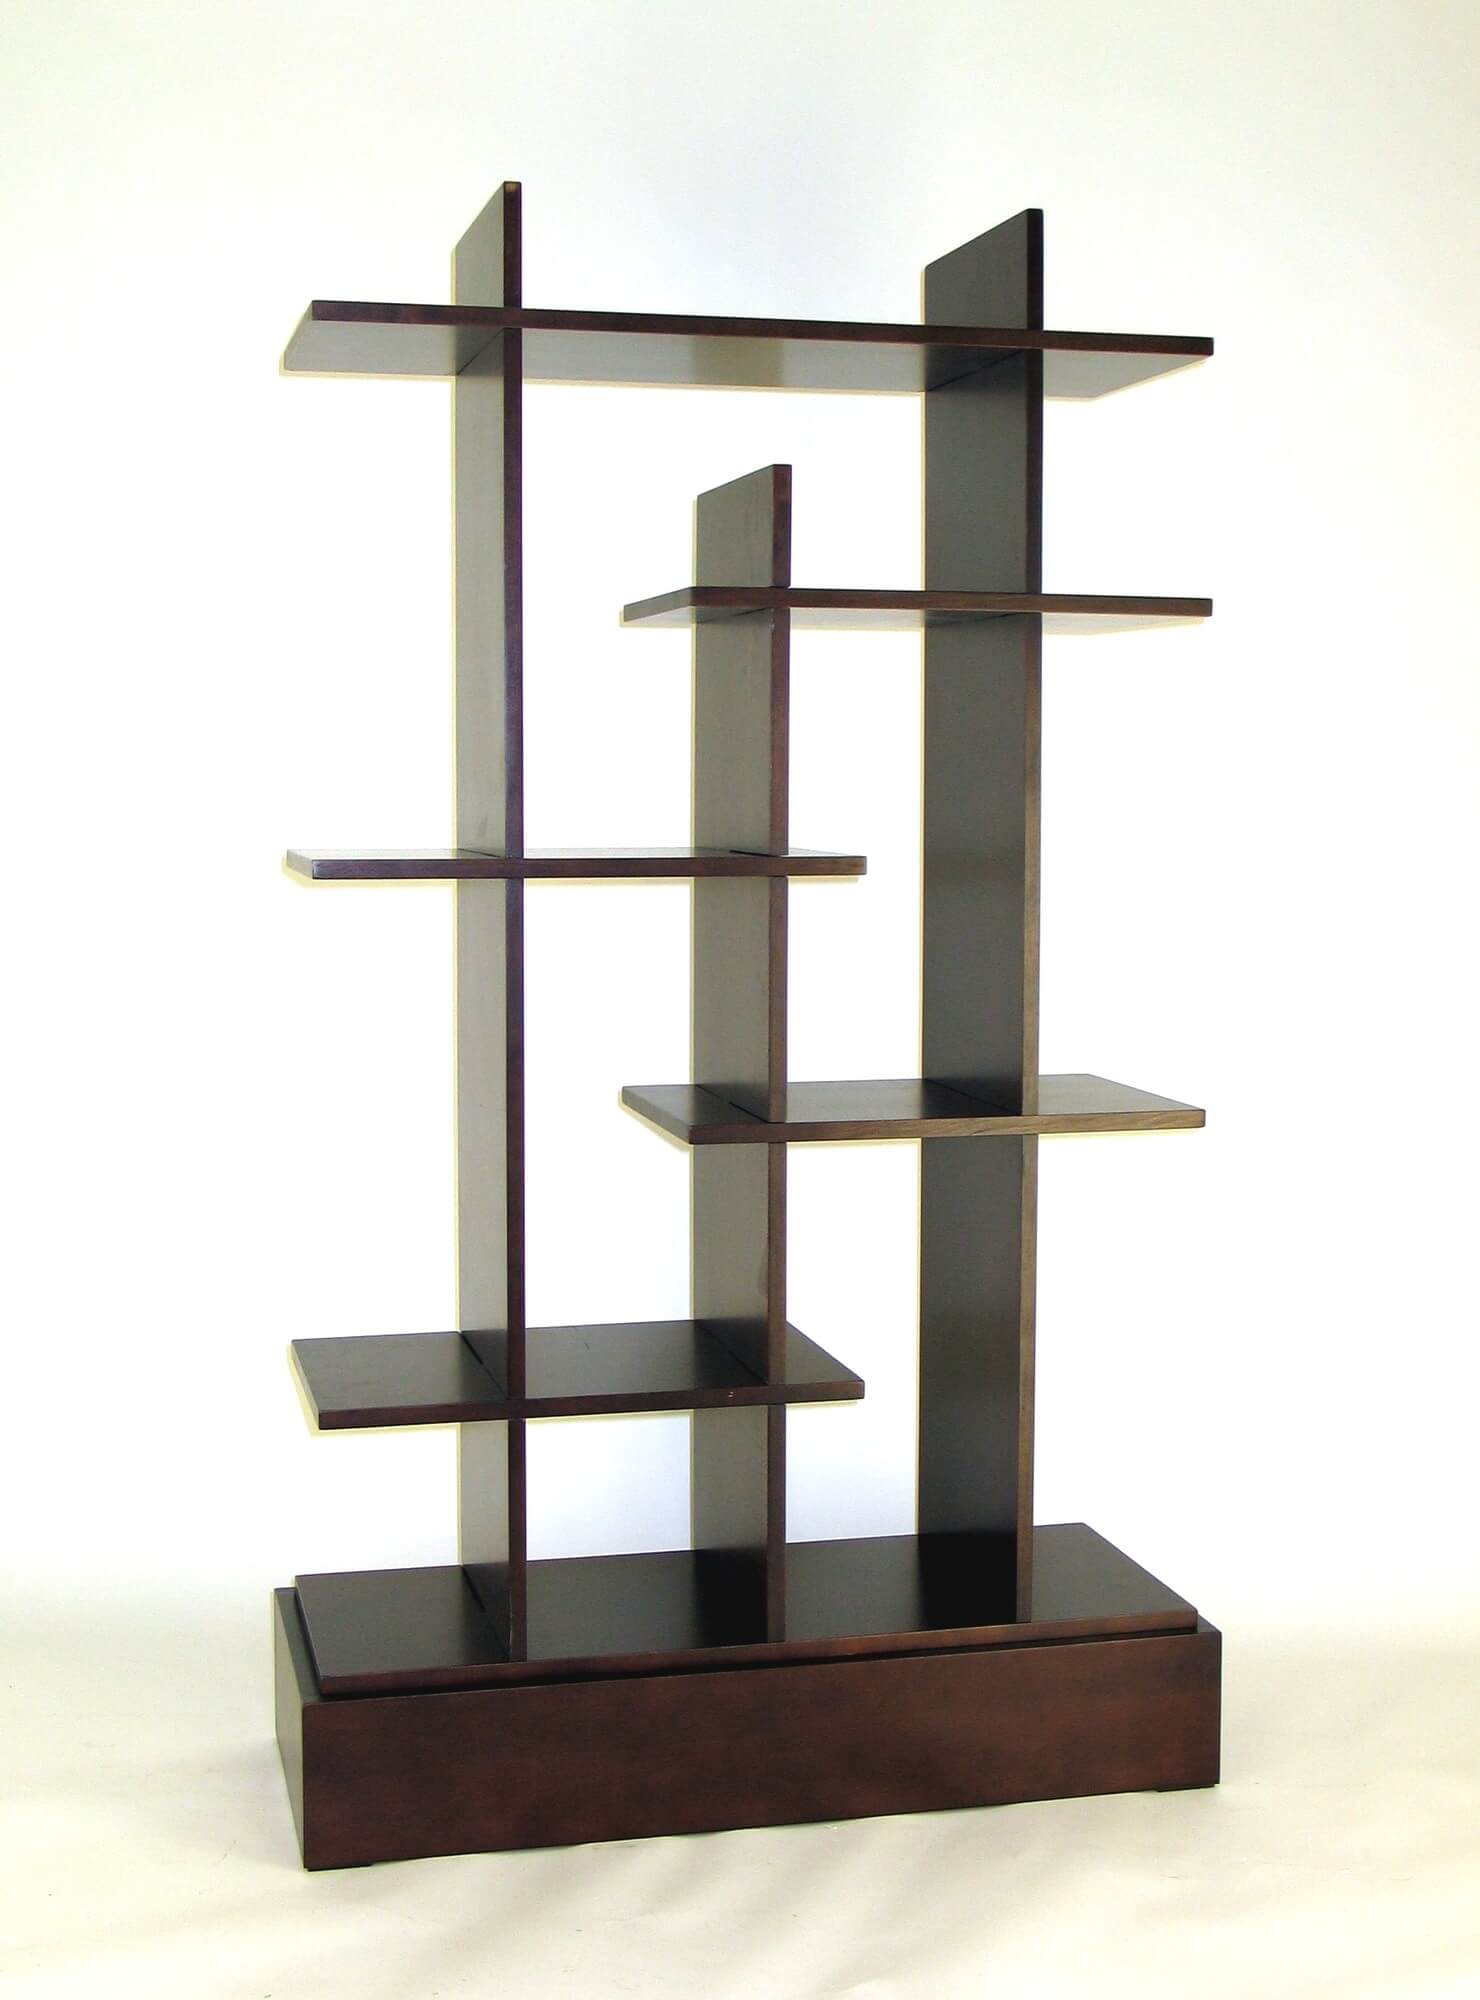 This is a statuesque style 6-cube shelf and while it doesn't really offer much shelving space, it's a very nice decorative unit with a modern design.